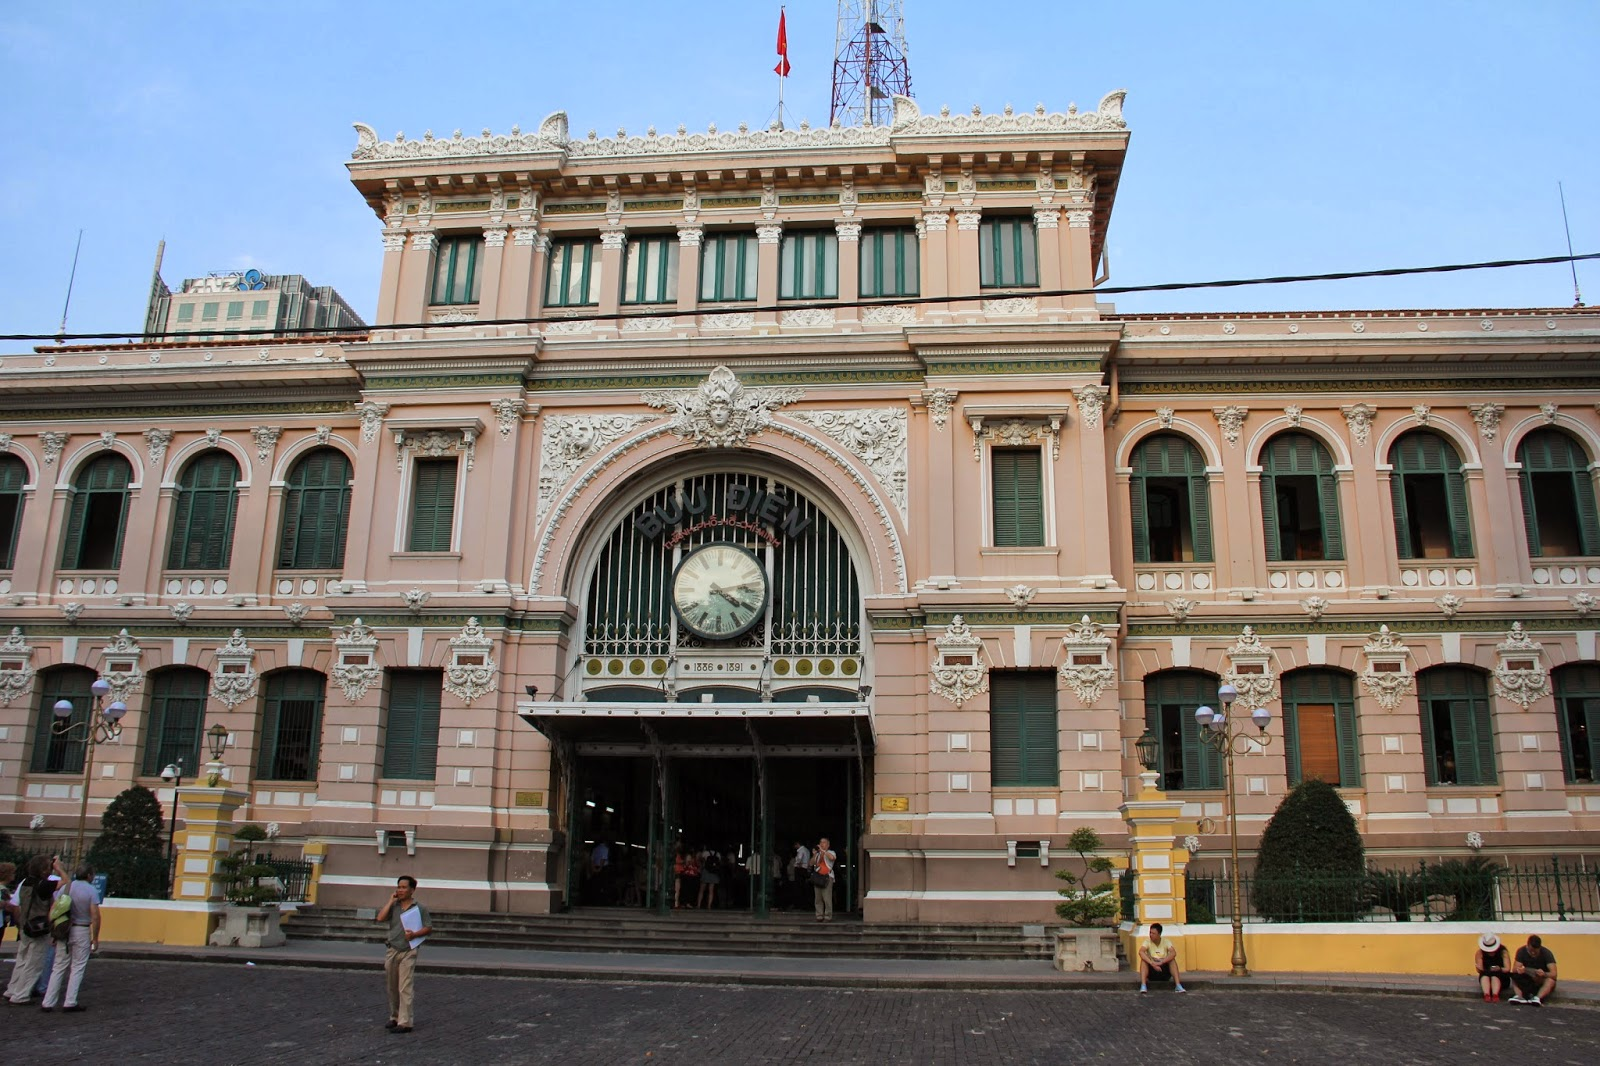 Saigon's General Post Office, a grand old colonial building by Gustave Eiffel.